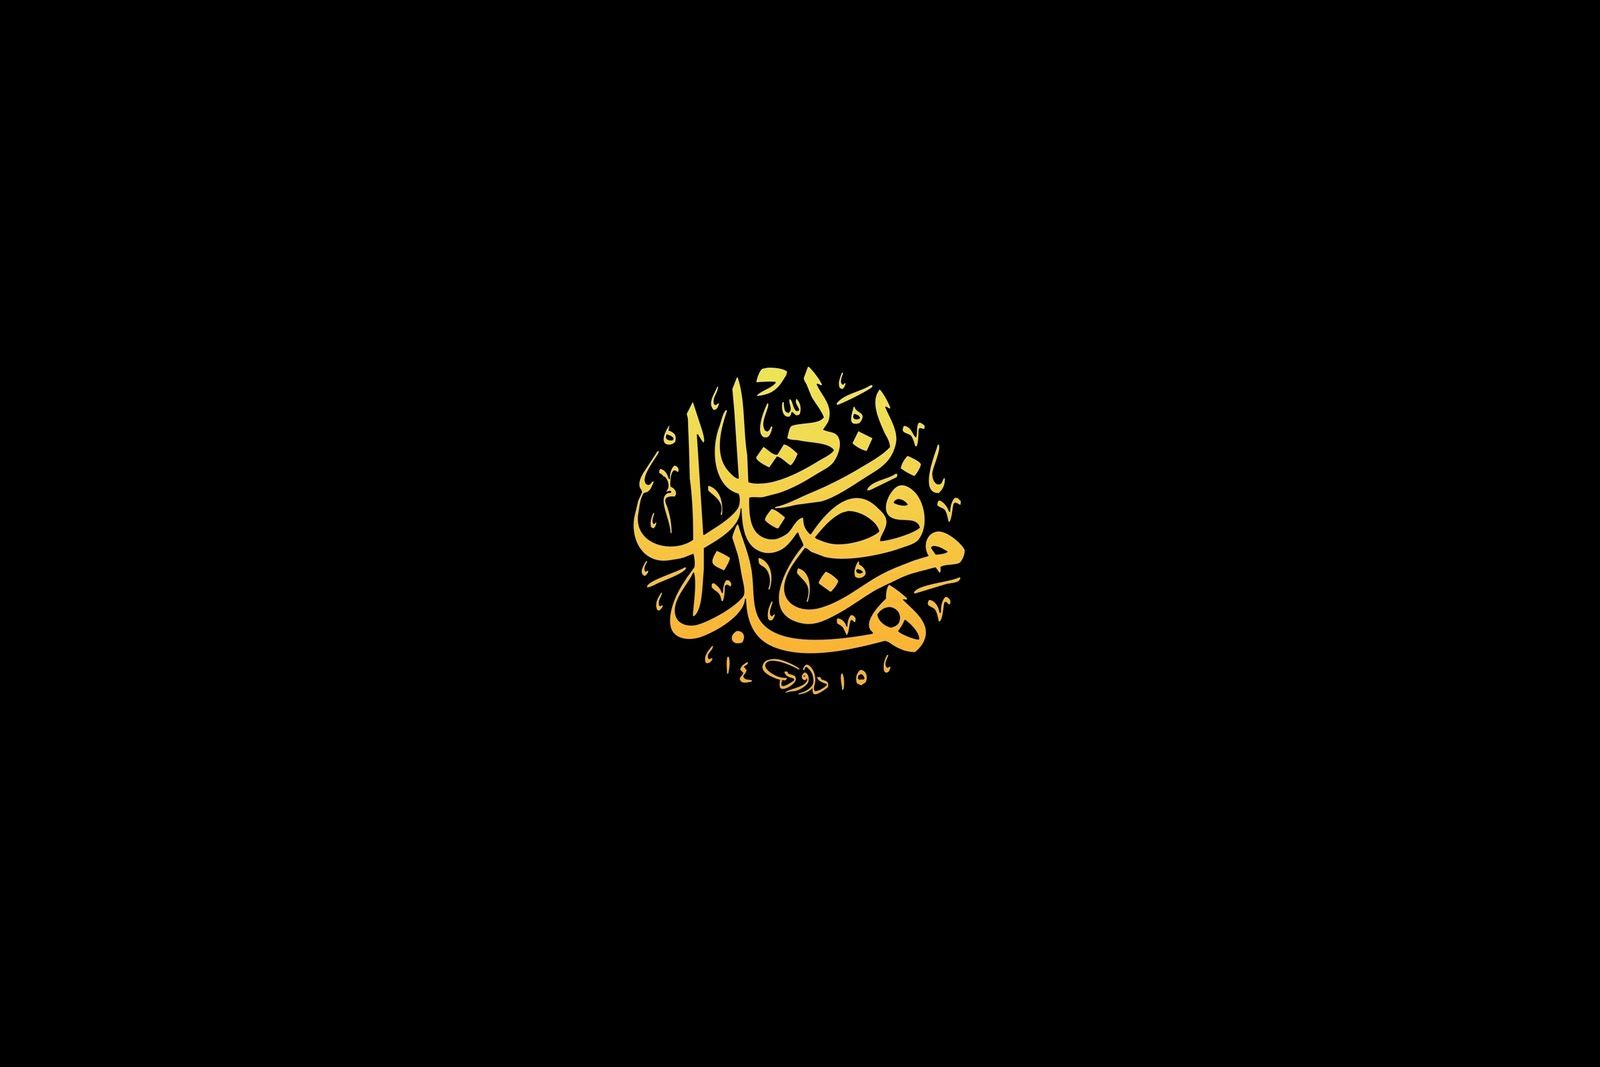 1600x1067 Islamic Calligraphic Wallpapers ~ Islamic Quotes About